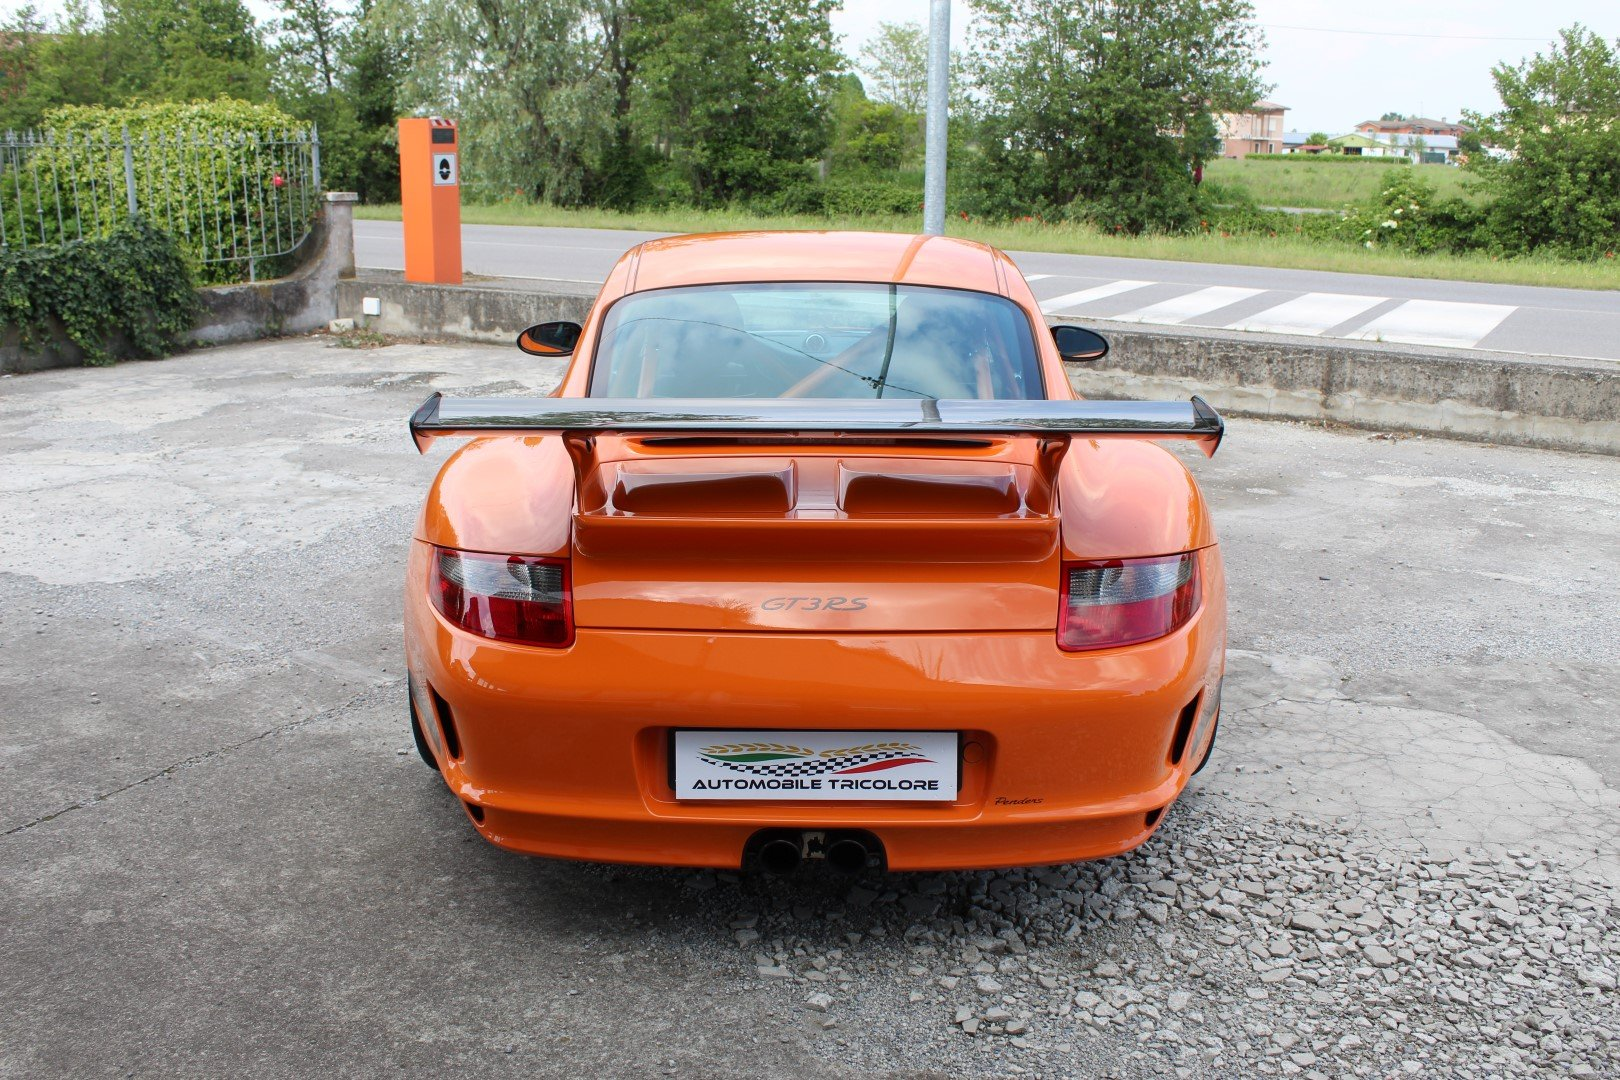 2007 Porsche 911 997 GT3 RS never repaint - first paint For Sale (picture 3 of 6)